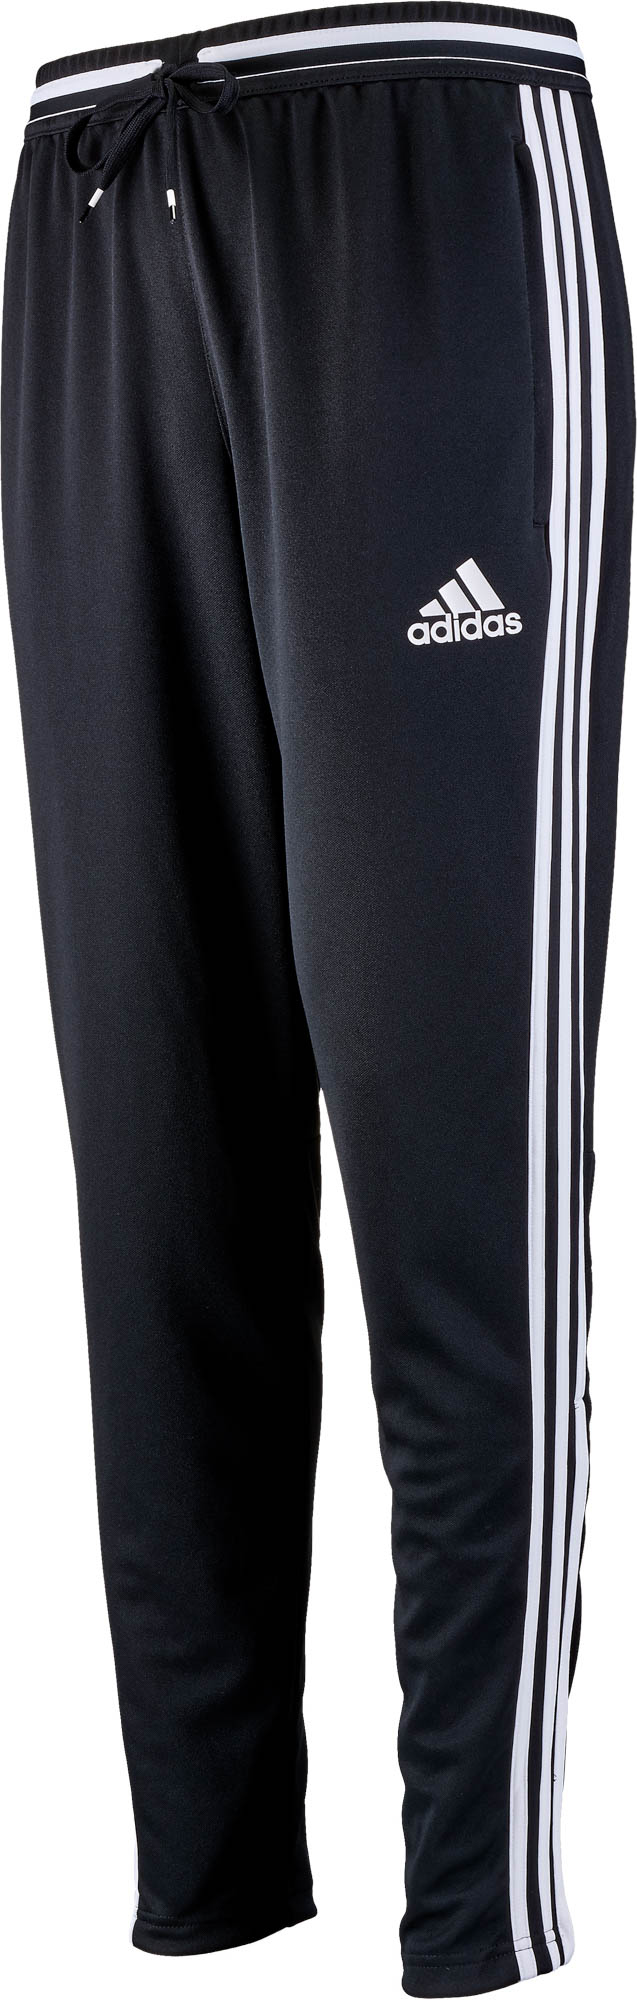 f5c5523af adidas Condivo 16 Training Pant - adidas Soccer Pants